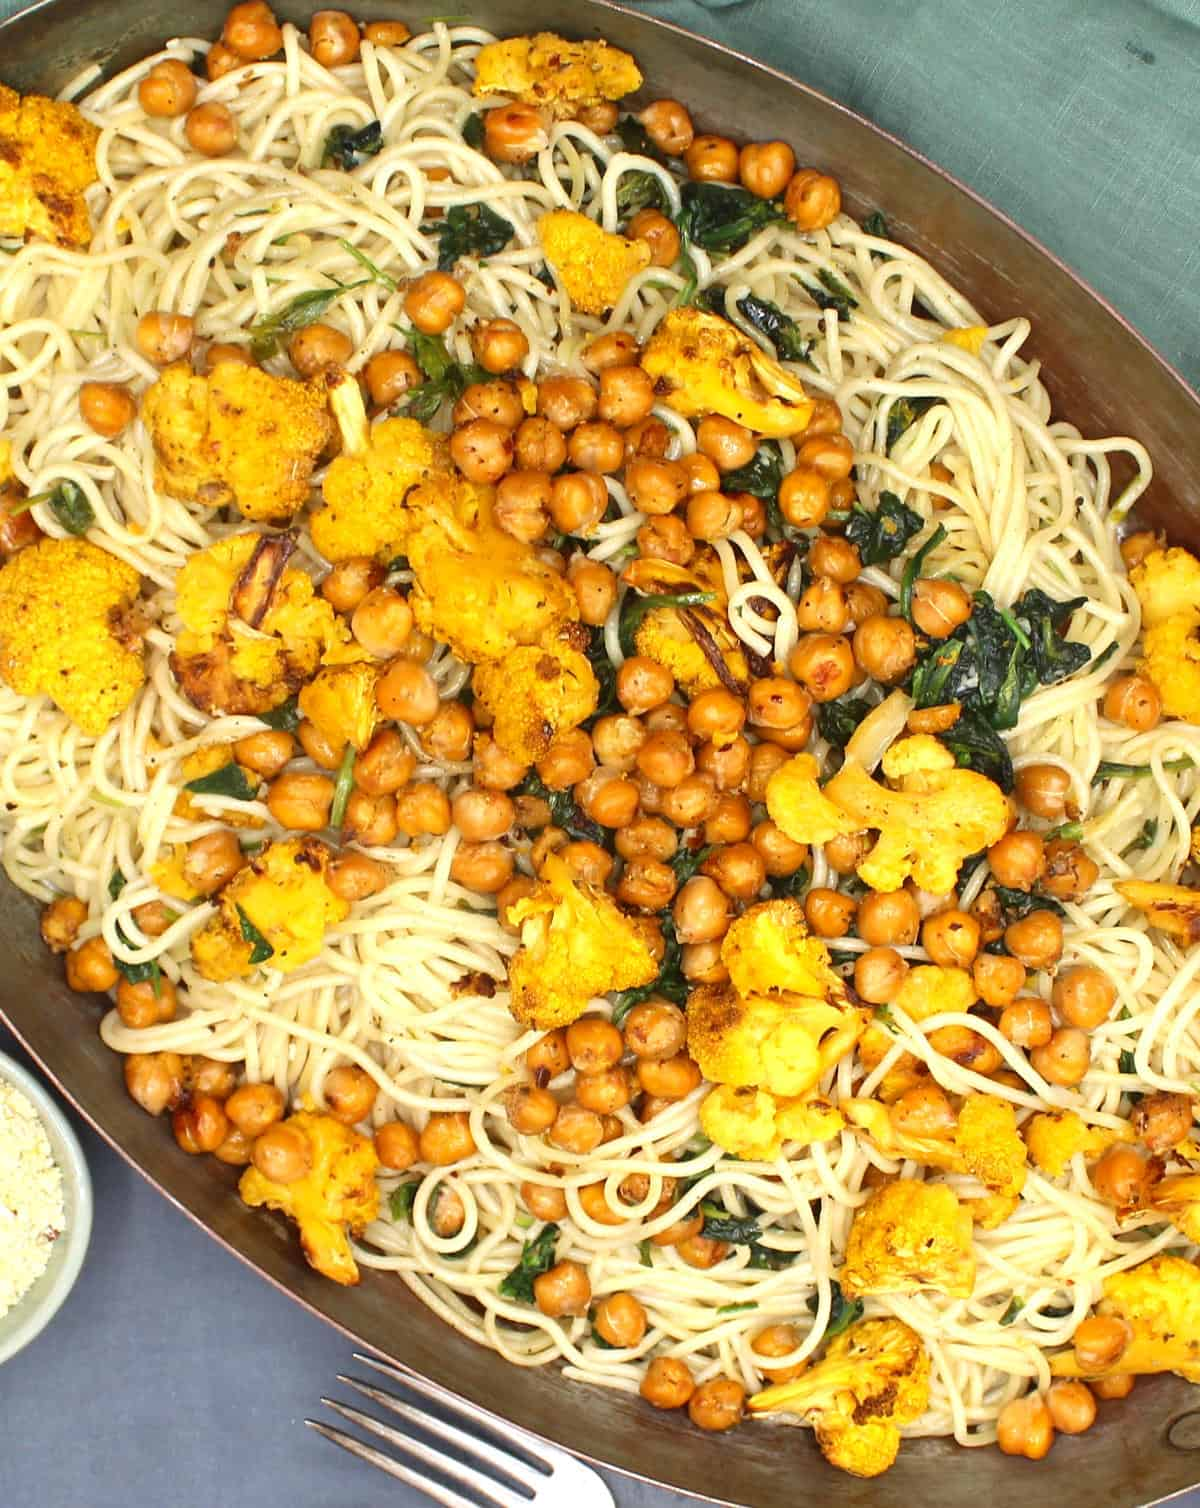 Overhead closup of spaghetti pasta with roasted cauliflower, chickpeas and spinach in a copper pan.